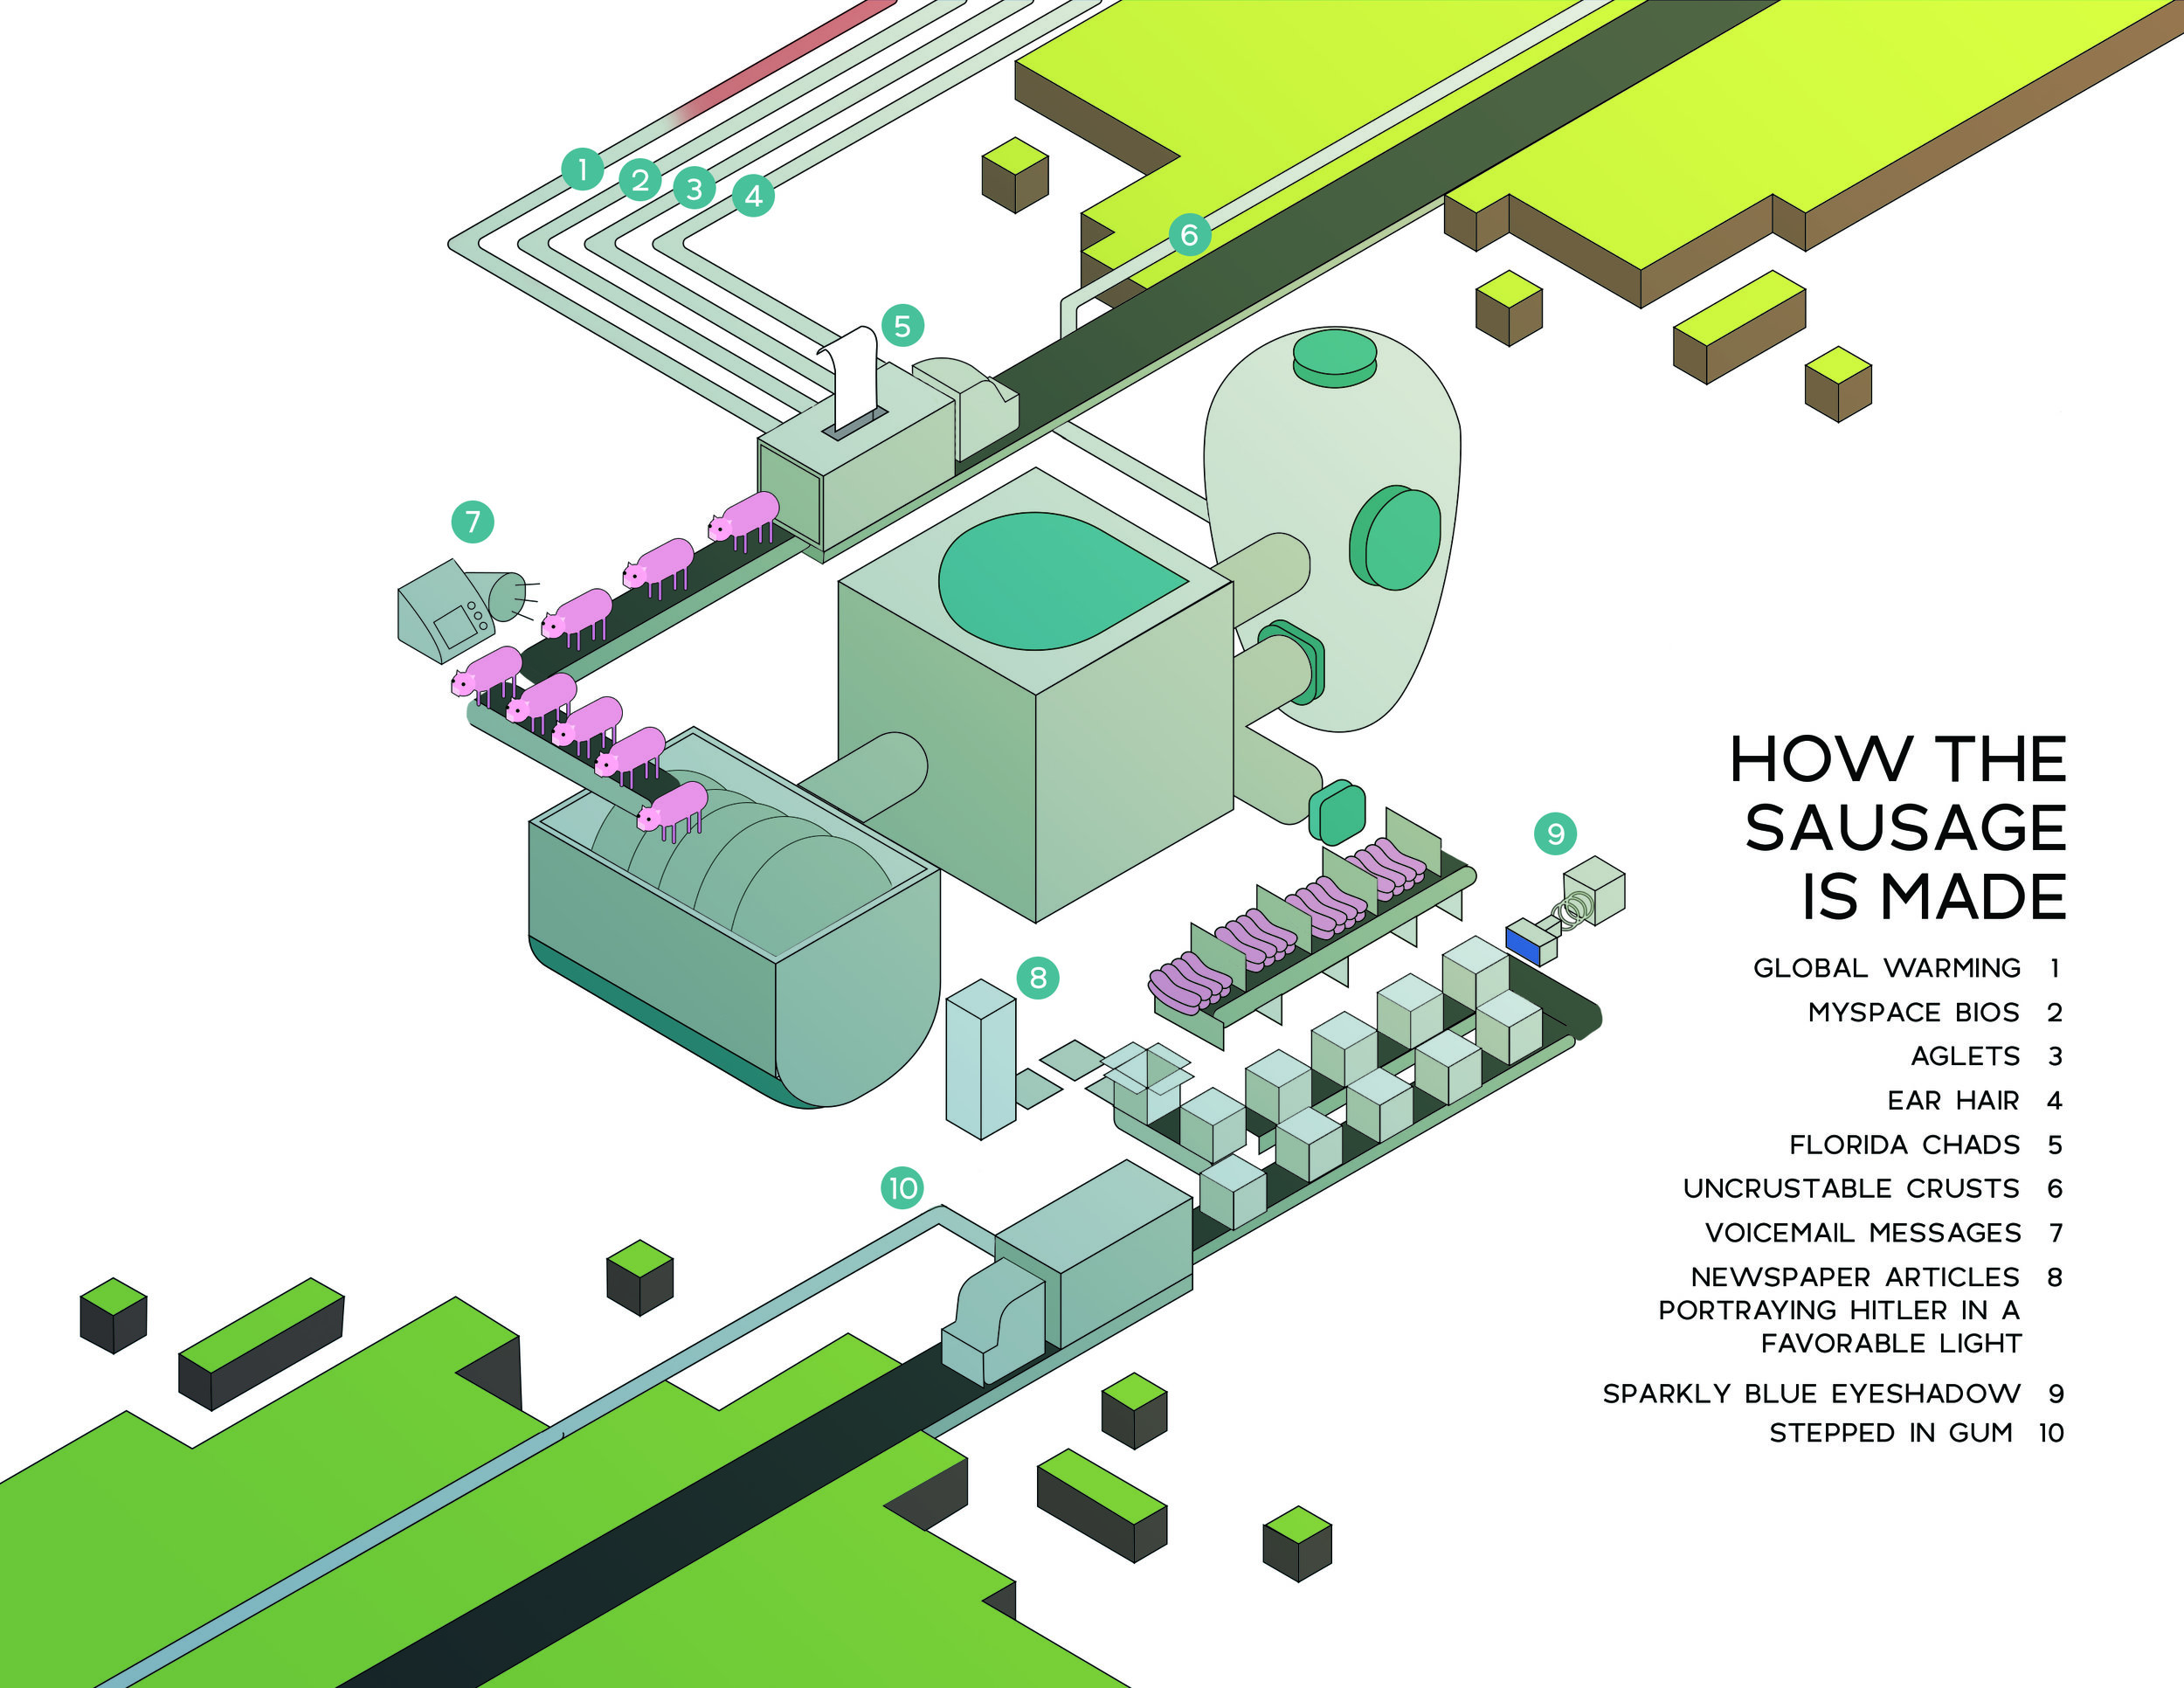 An isometric illustration of a fictional sausage factory.